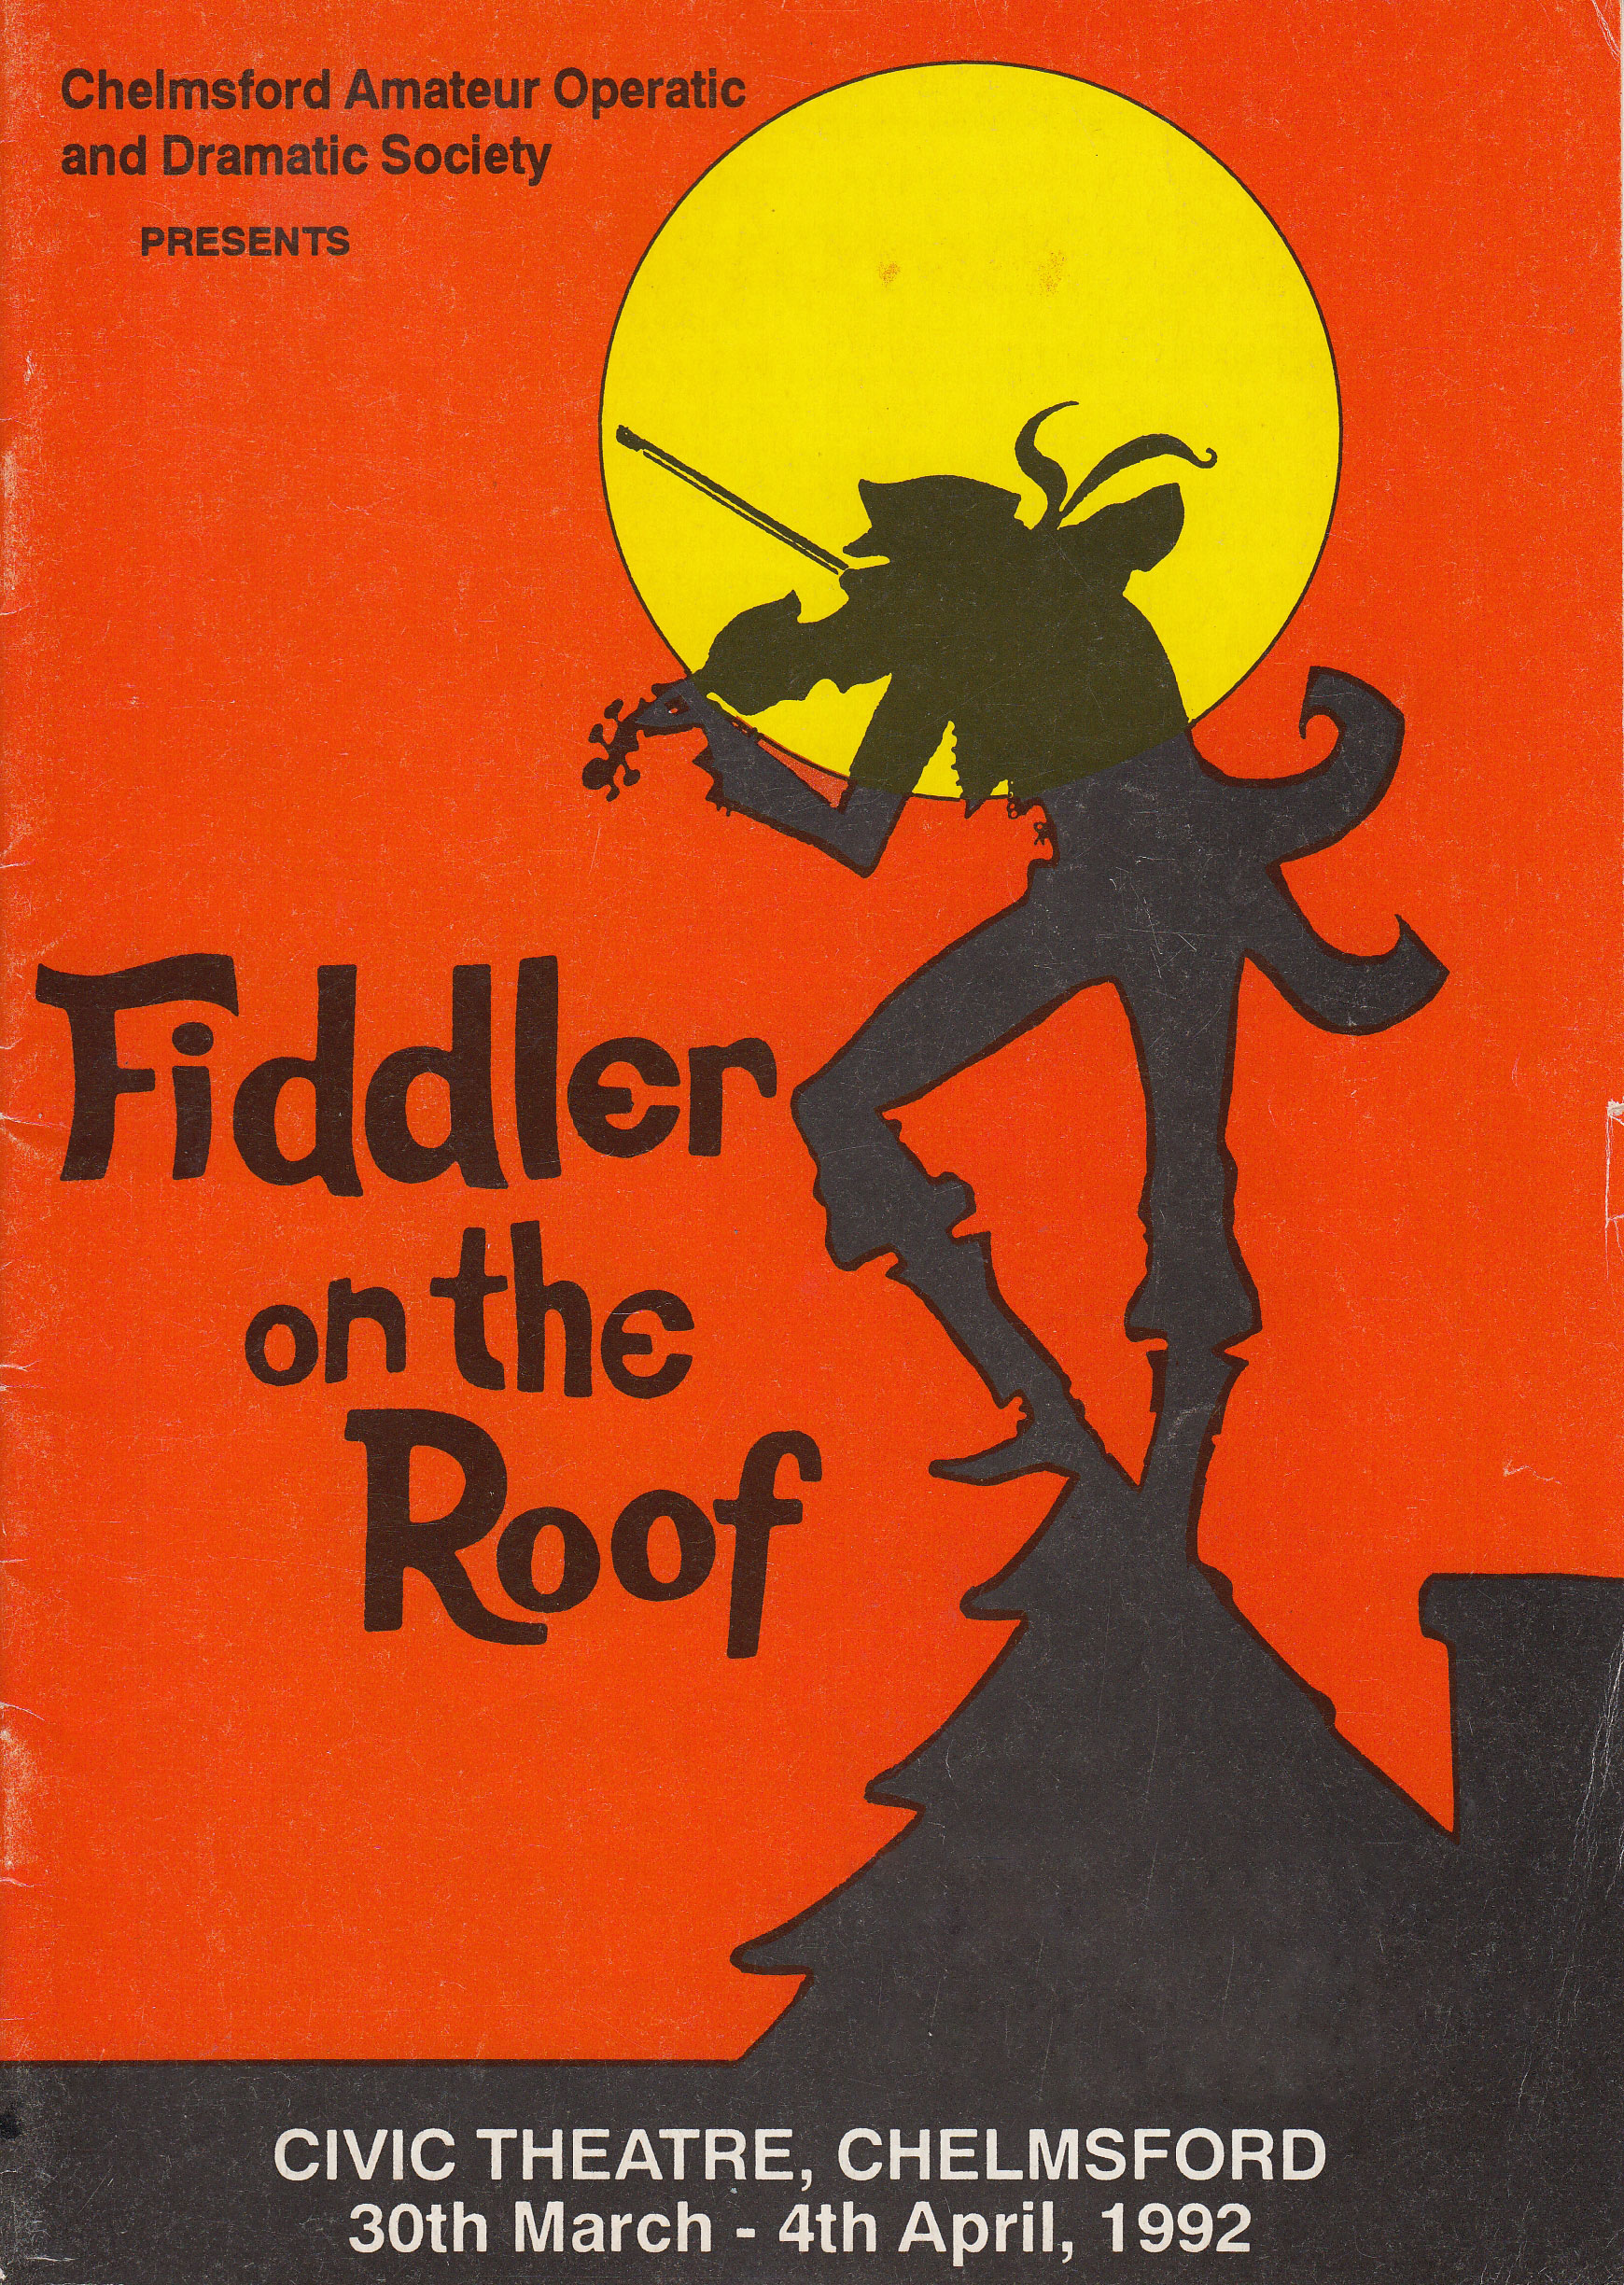 Fiddler on the Roof 1992